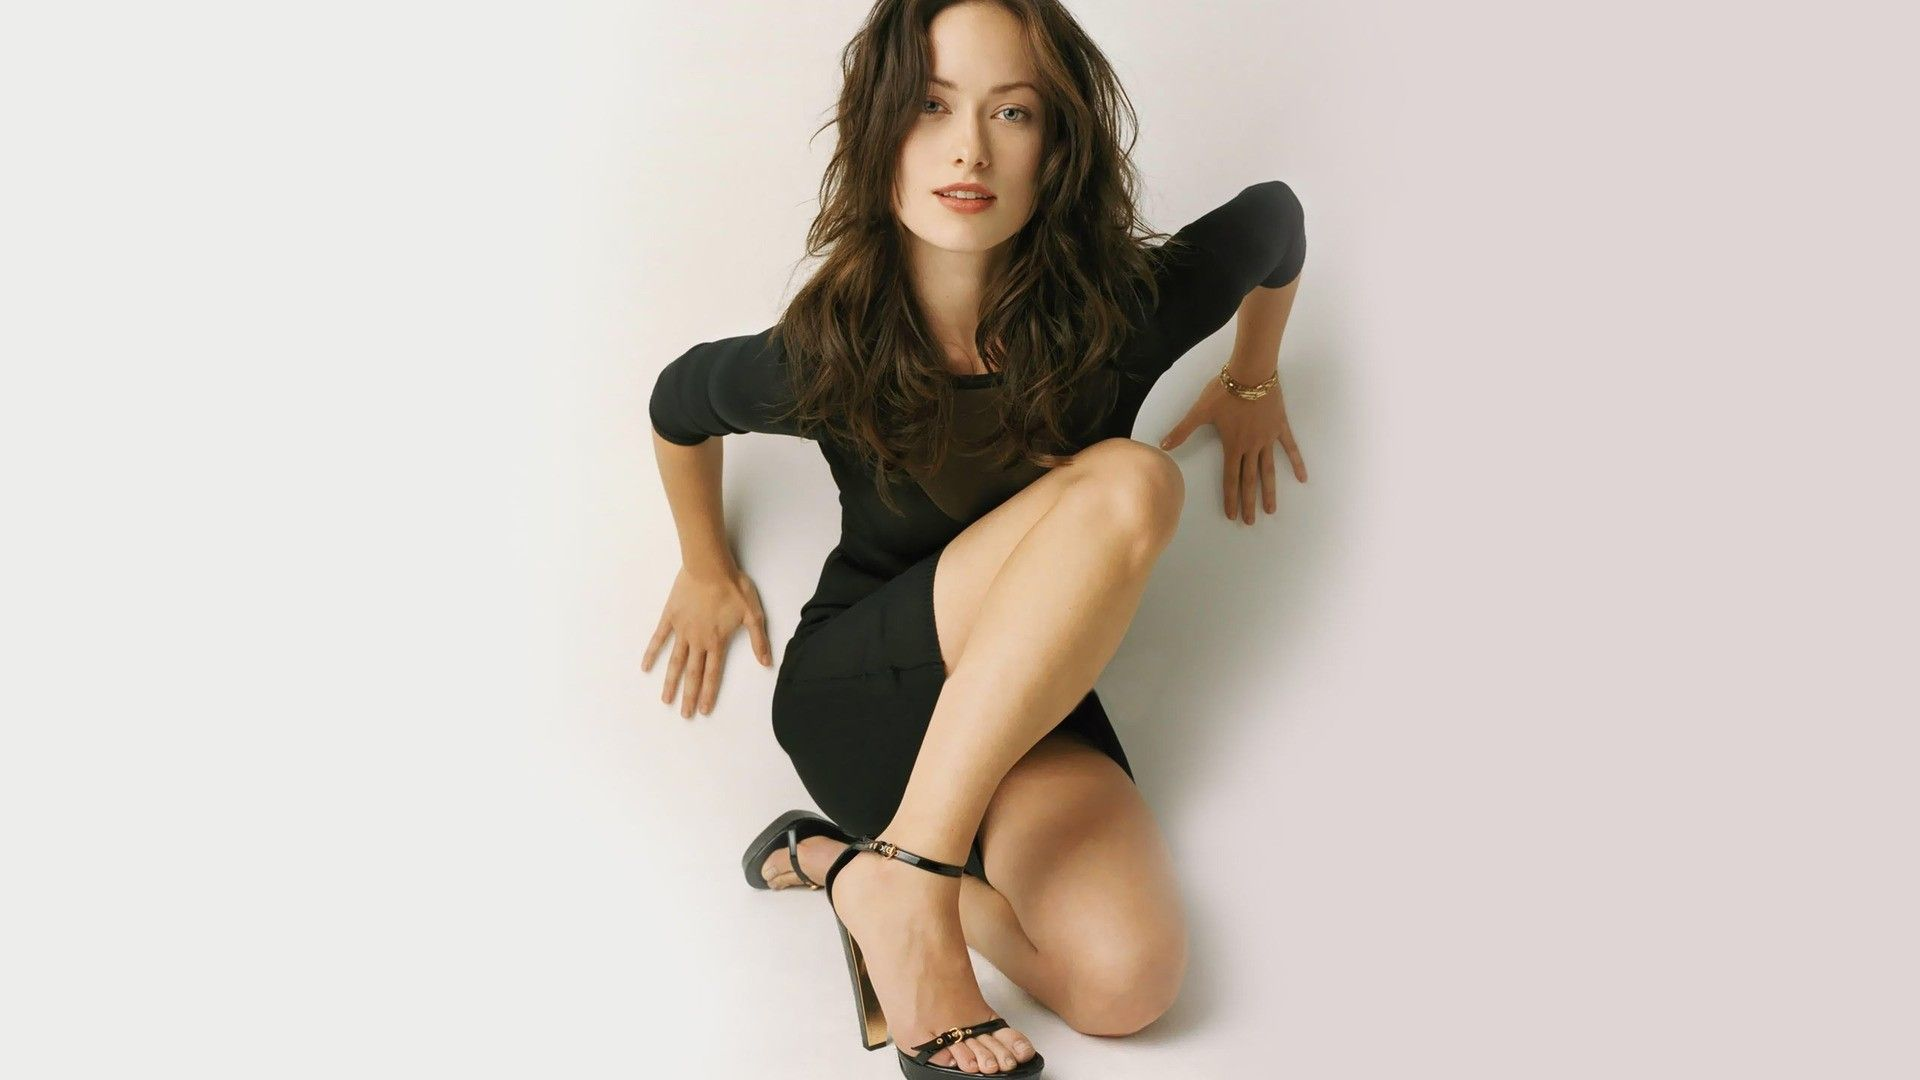 olivia wilde hottest | hd olivia wilde hot wallpapers - hd wallpaper